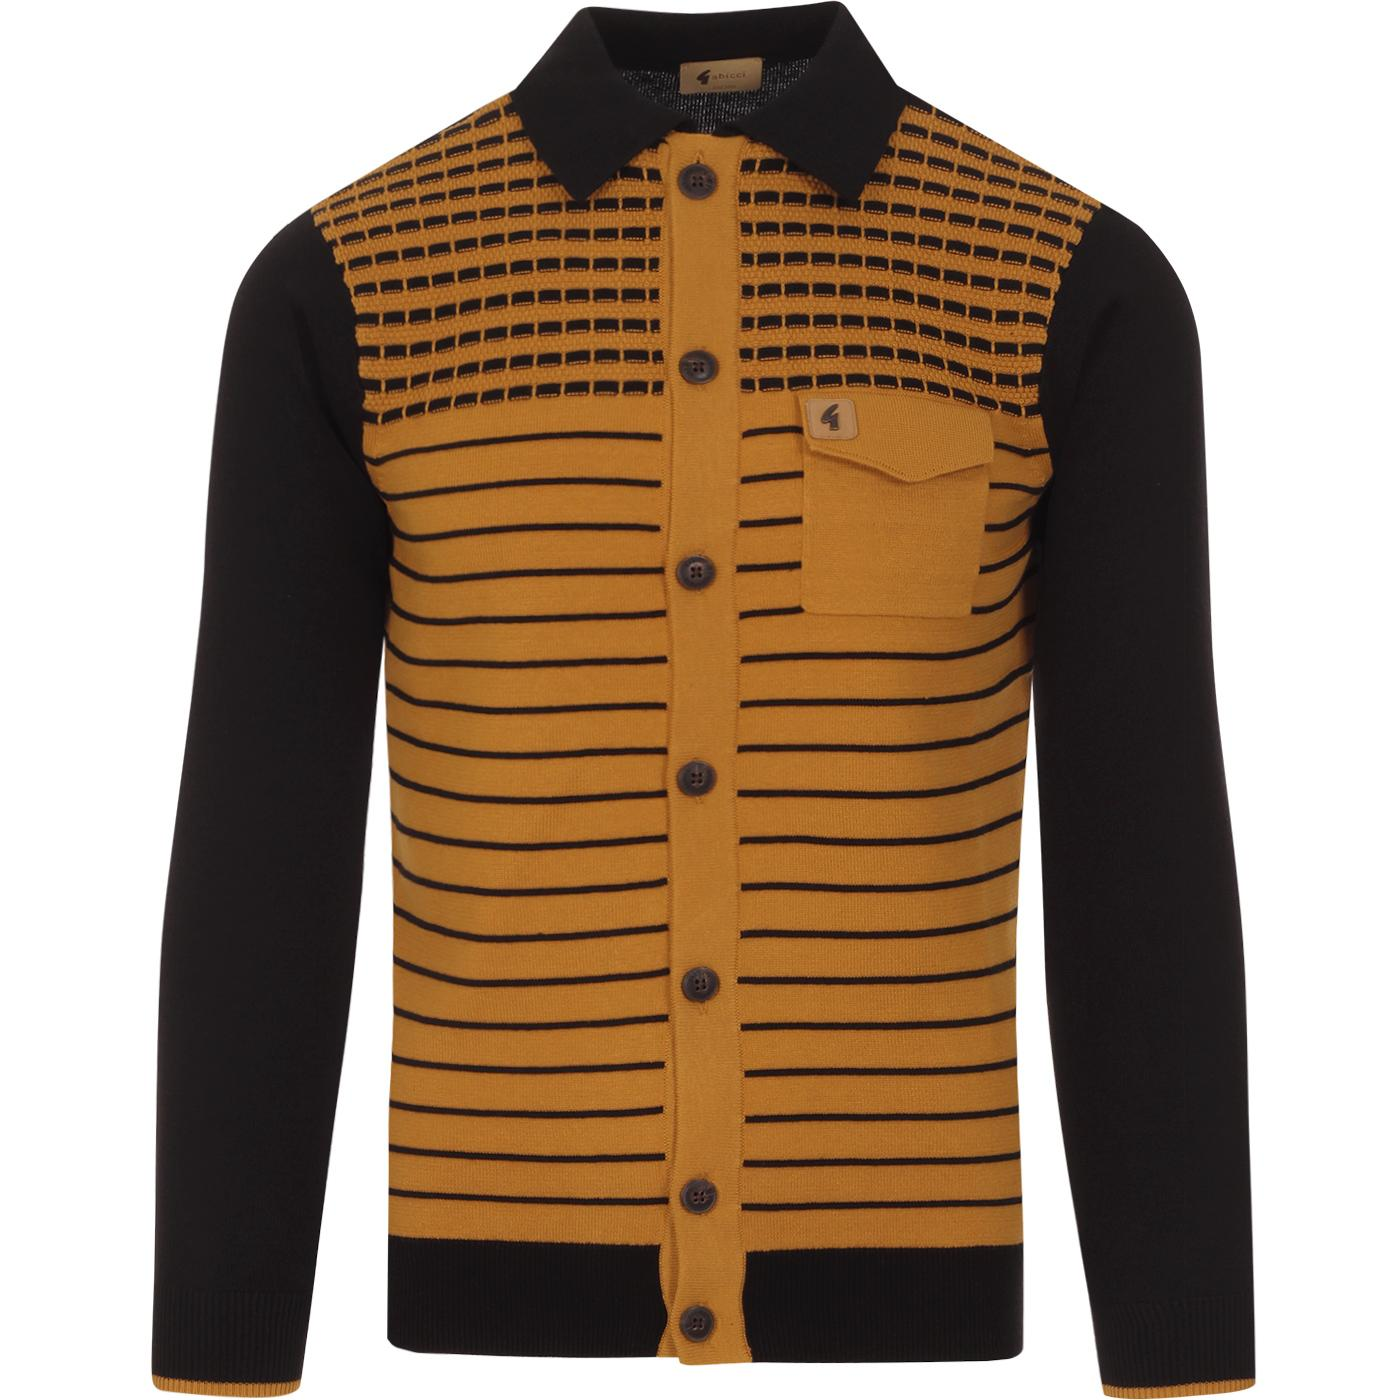 Escape GABICCI VINTAGE Mod Stripe Polo Cardigan